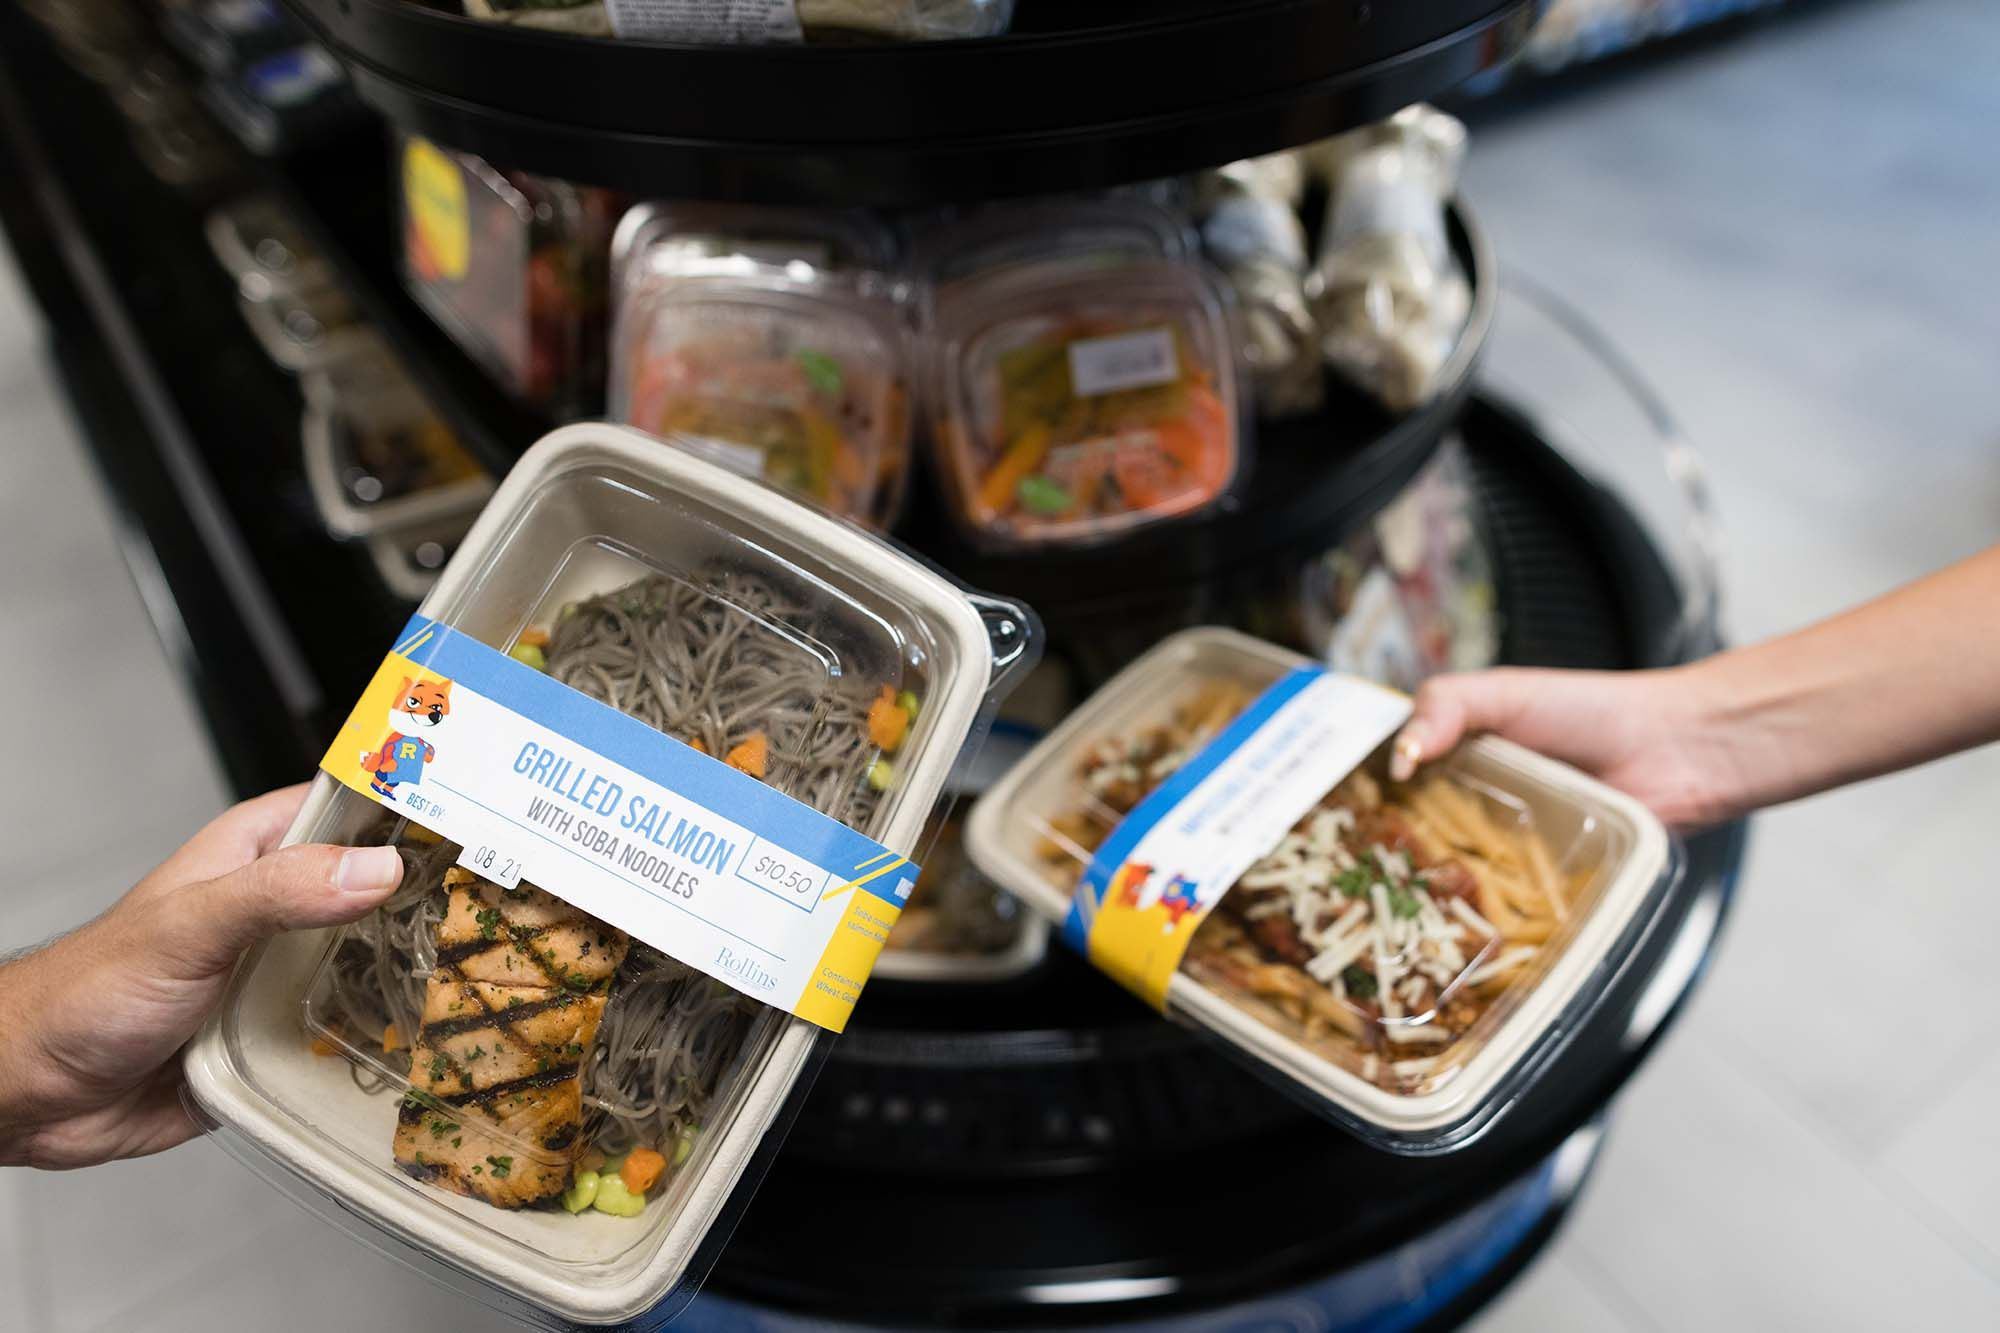 The grab and go station features ready-made Blue and Gold Apron meals